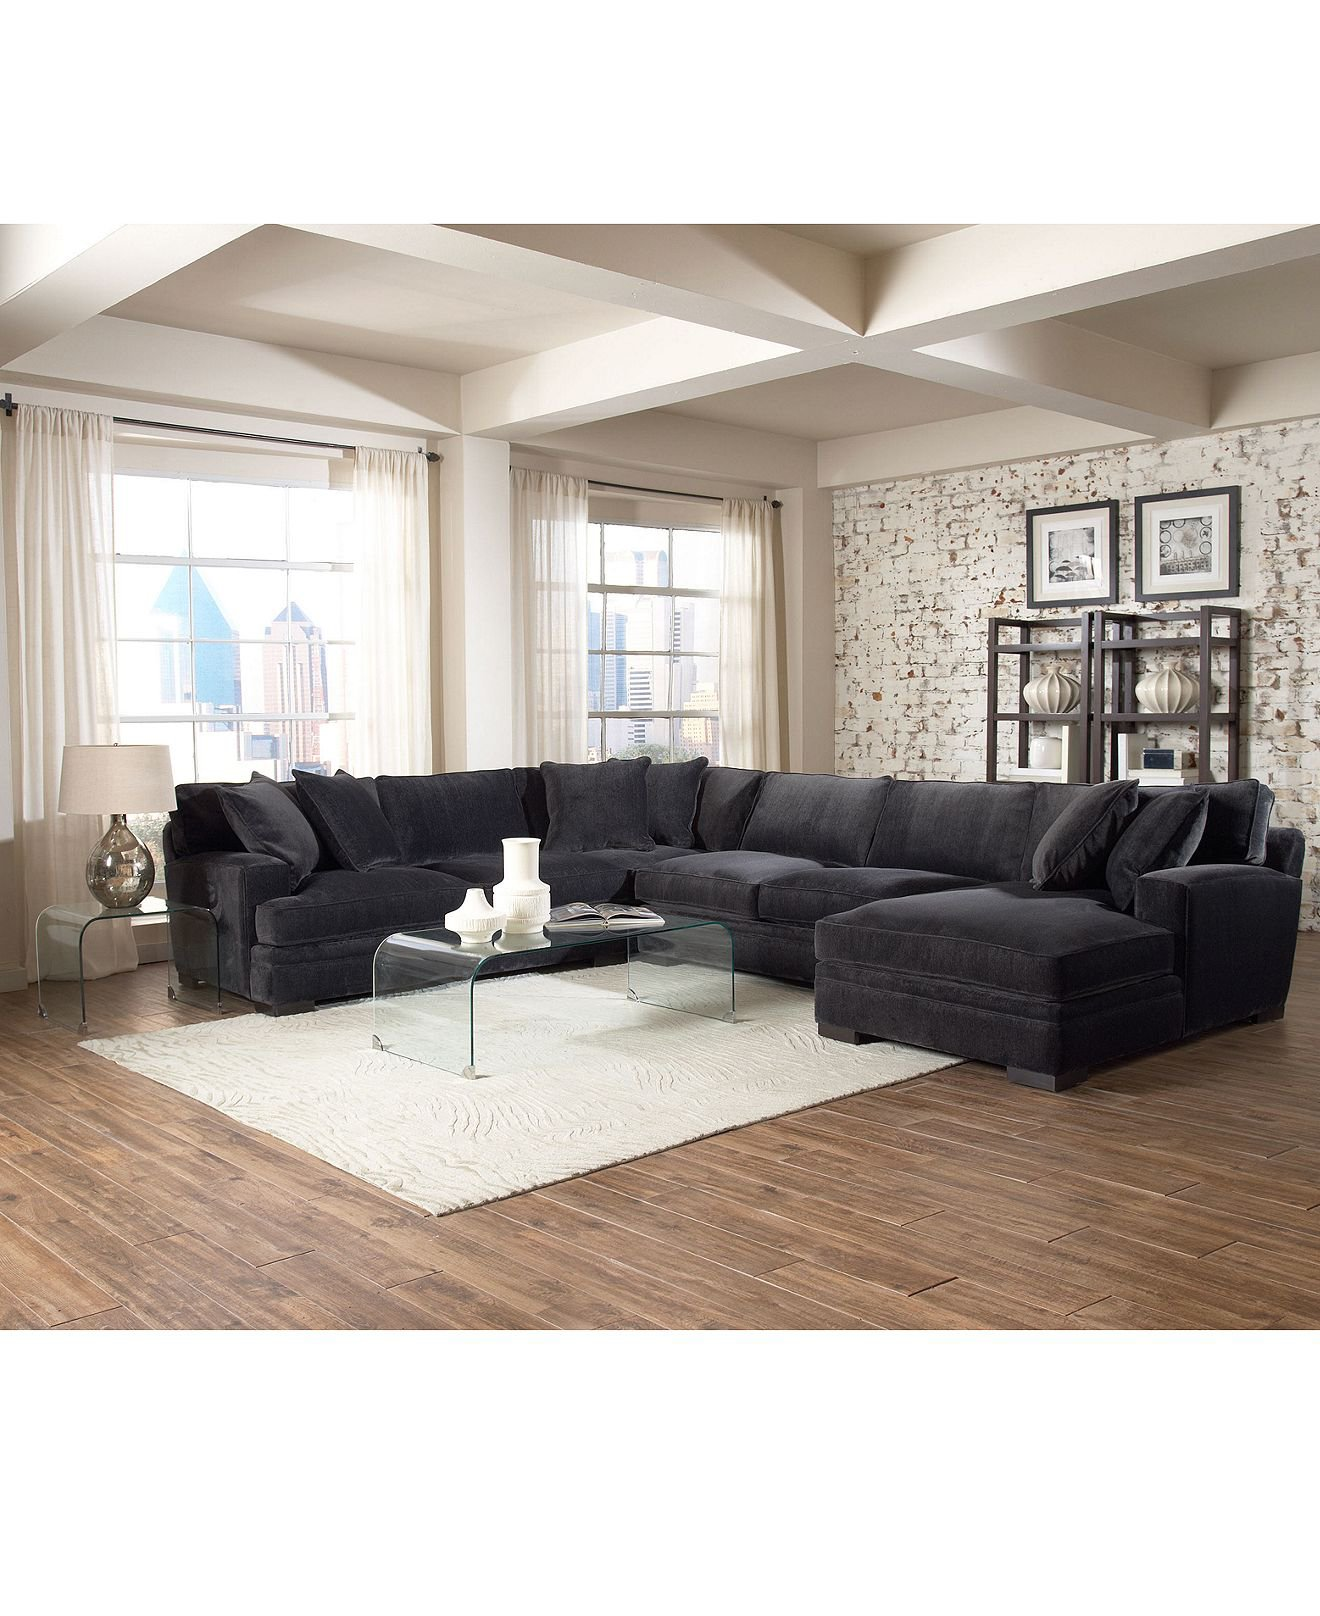 Teddy Fabric Sectional Living Room From Macys